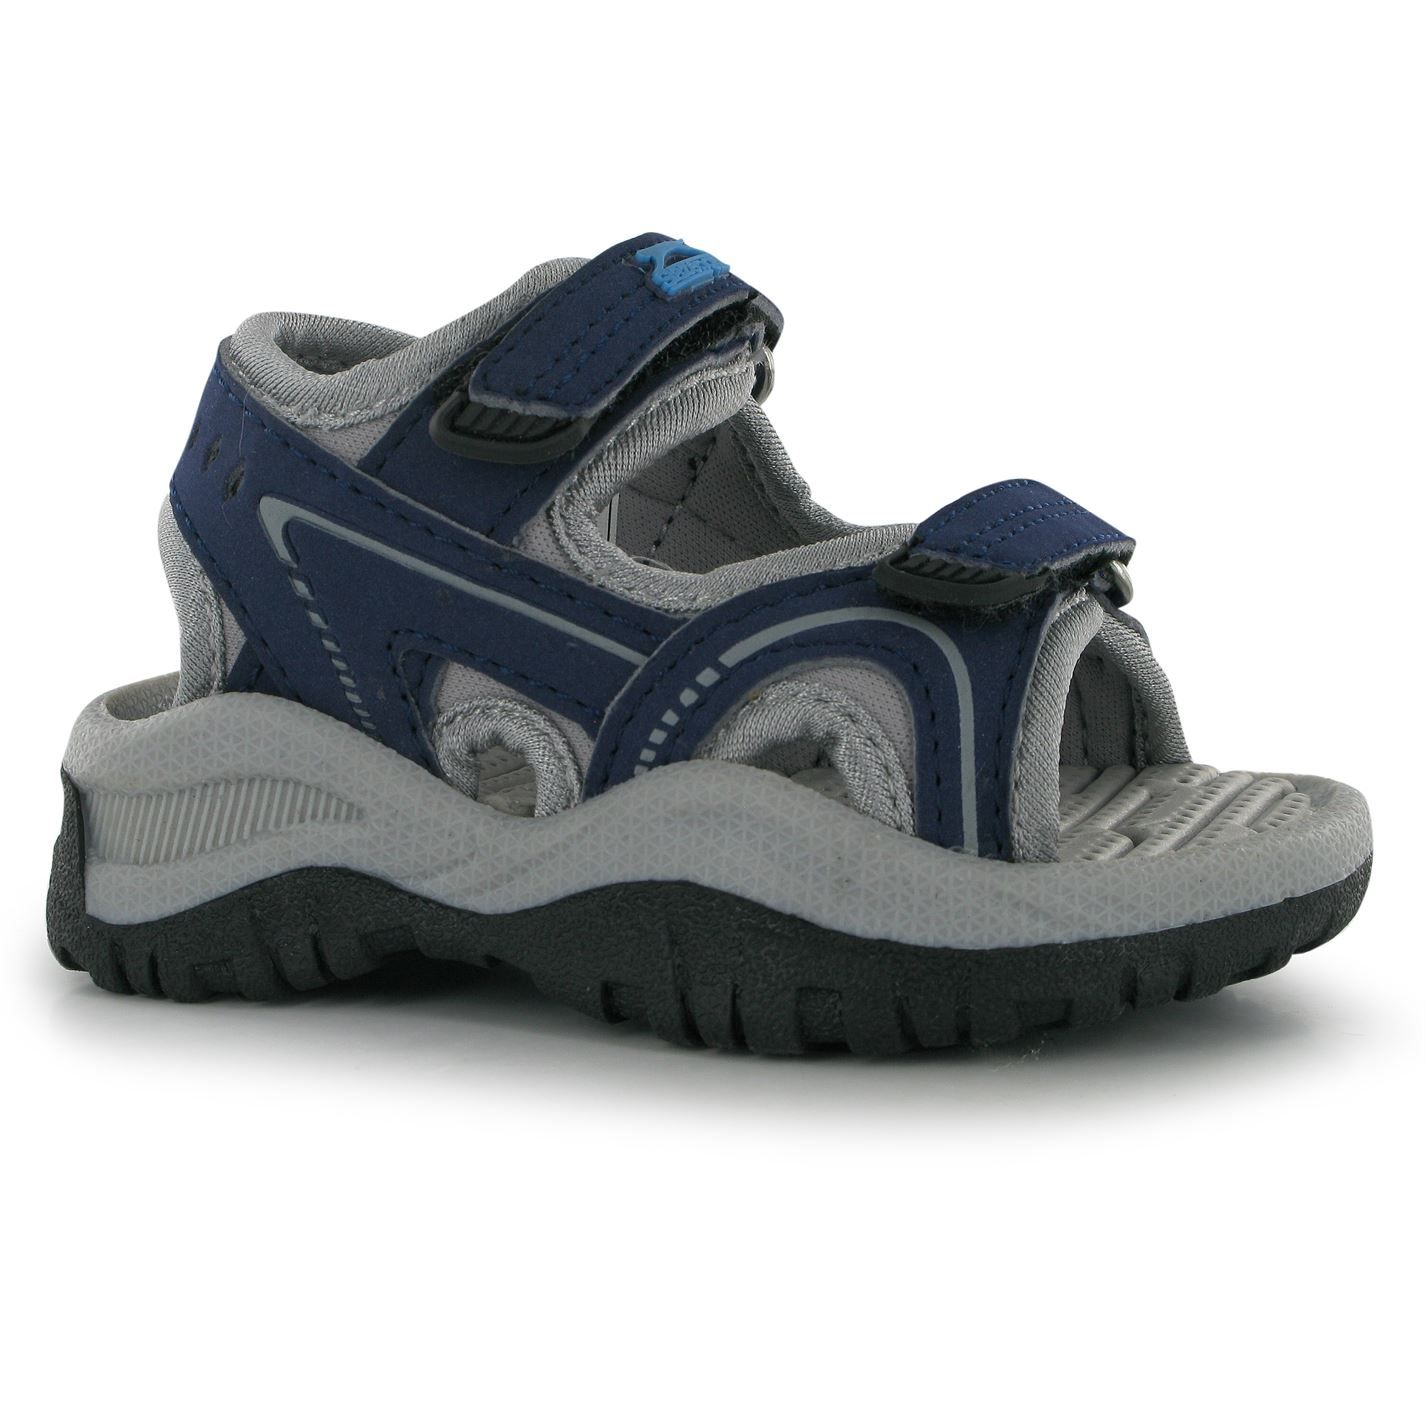 Slazenger | Slazenger Wave Sandal Infants | Kids Shoes